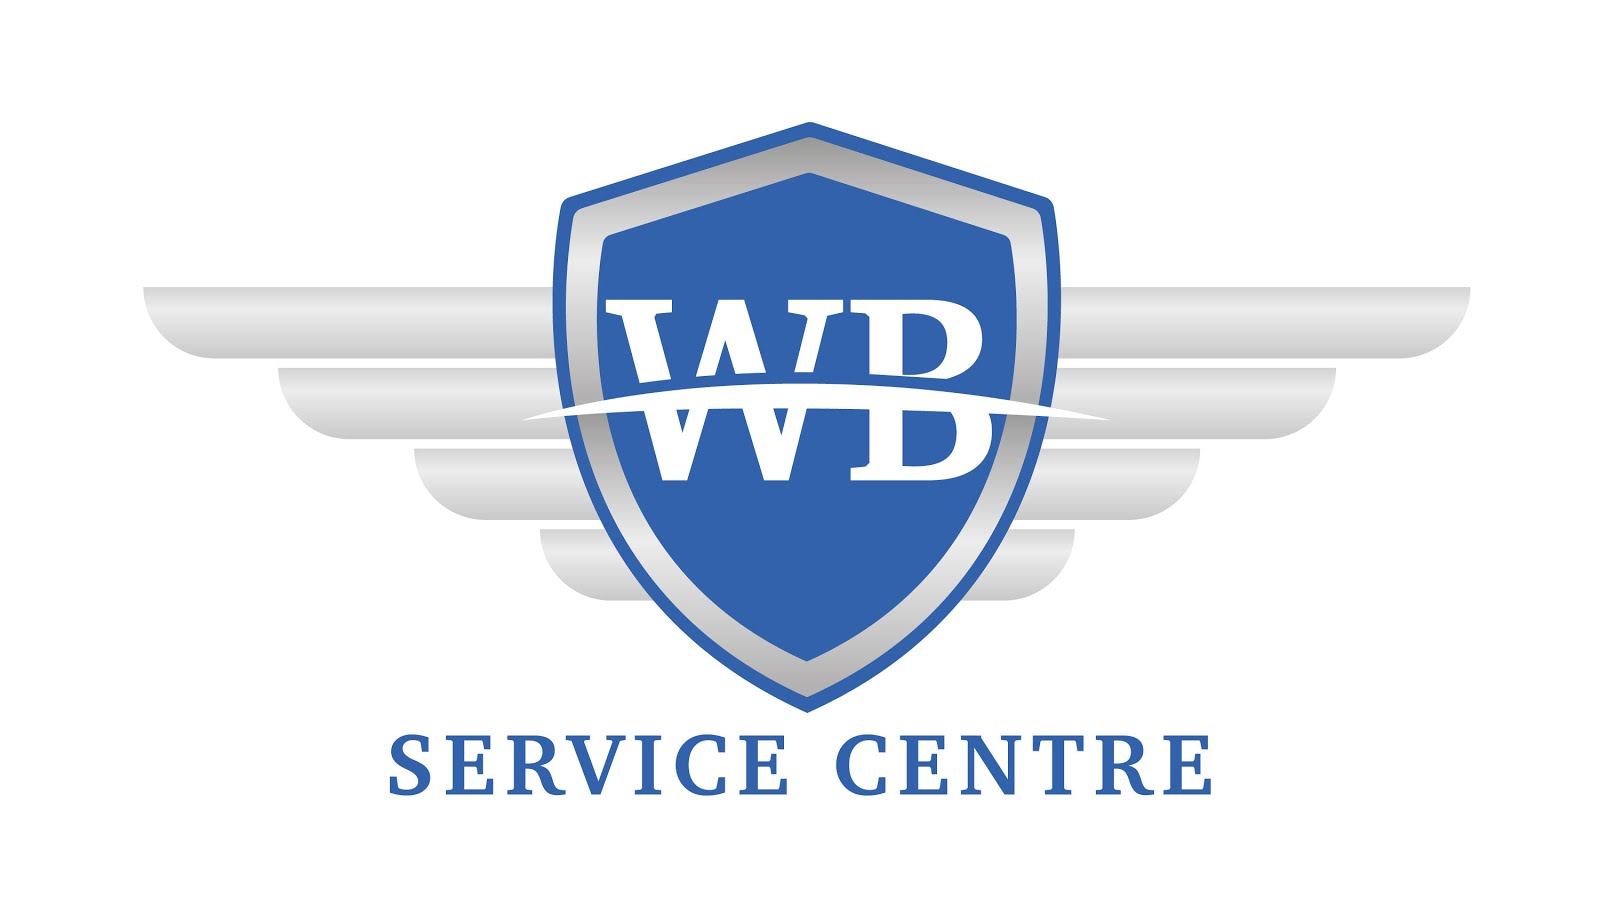 William's Bridge Service Centre